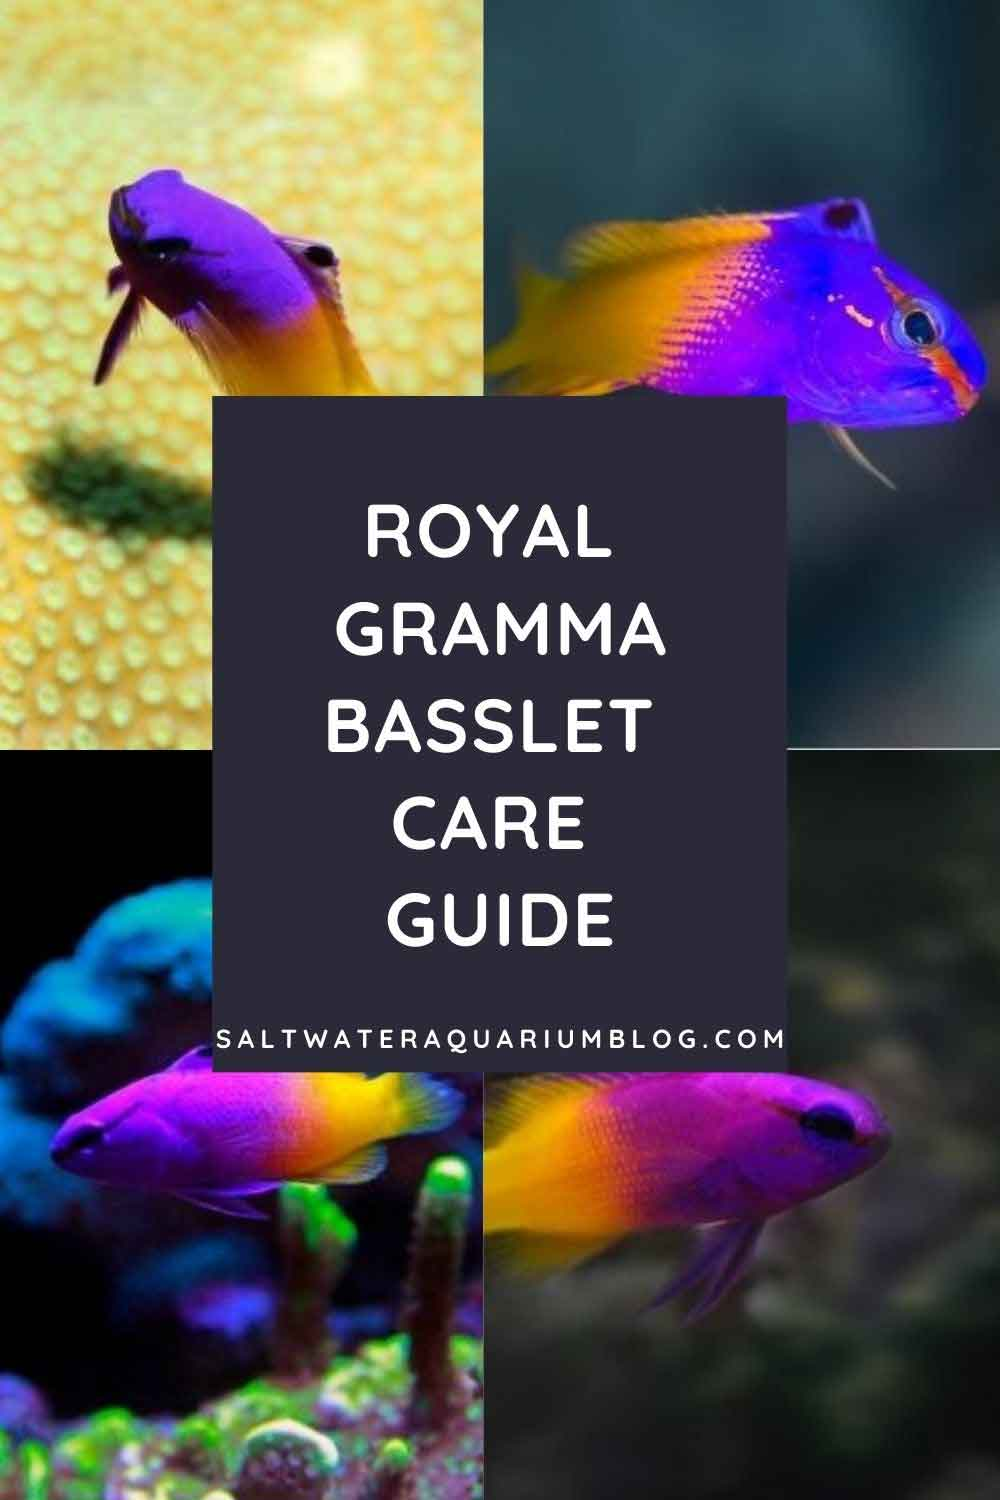 Royal gramma fish care guide profile picture